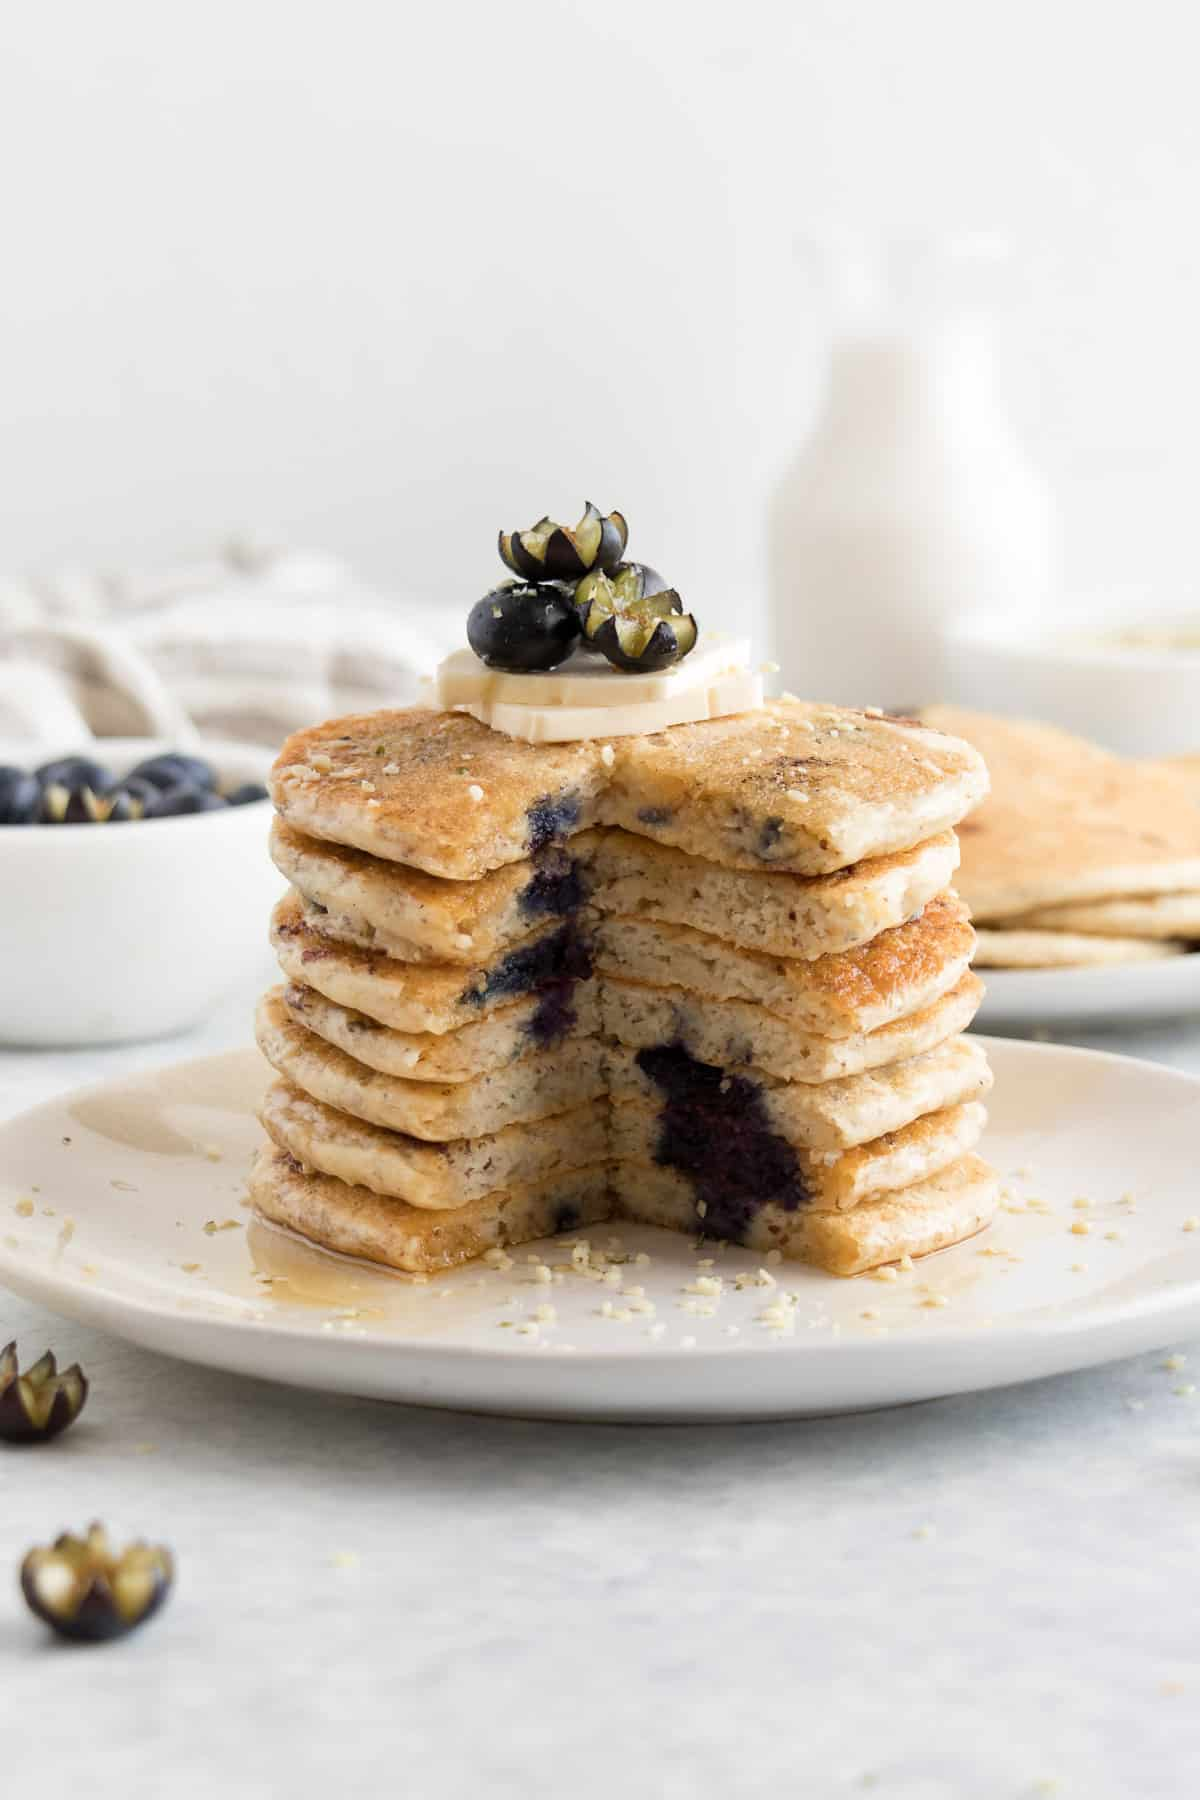 a sliced stack of fluffy pancakes with blueberries and butter